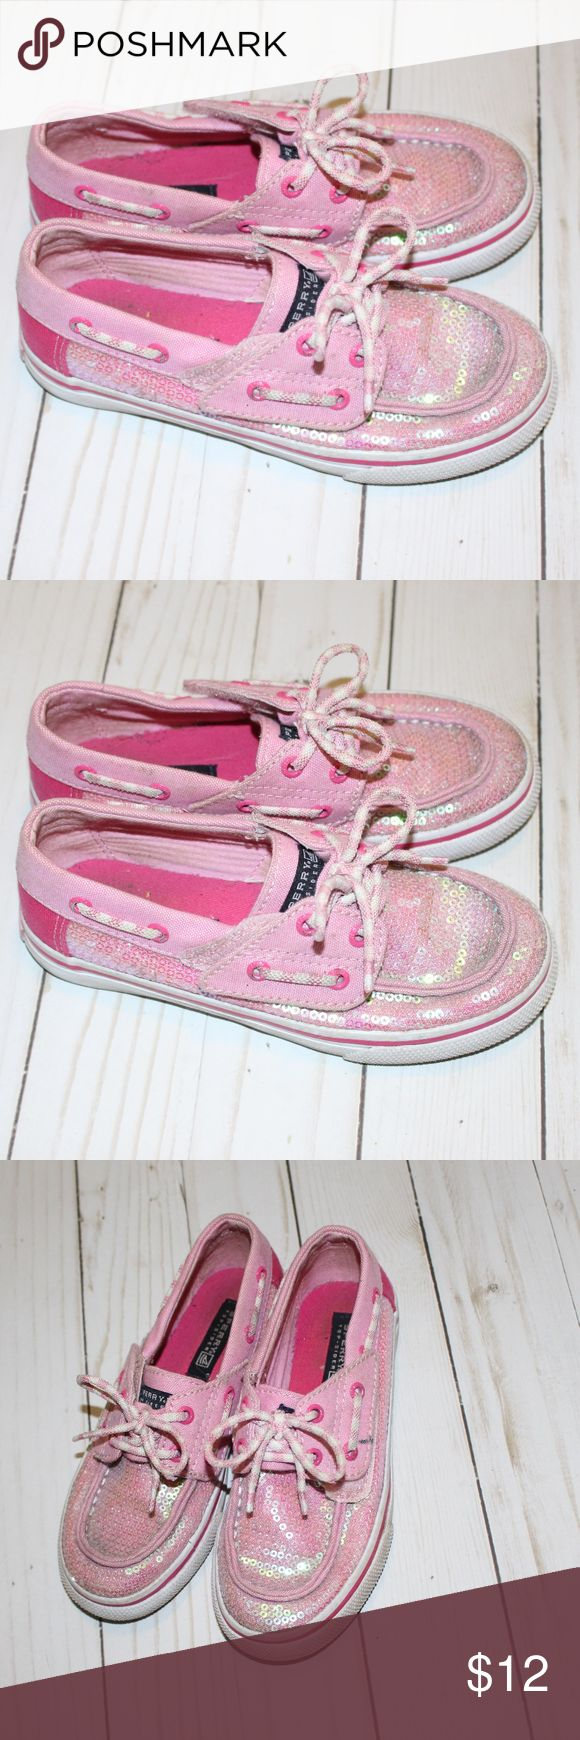 Pink Girl Sperry's Top-Sider Size 11 Pink girls Sperry's size 11 excellent condition comes from a smoke free and pet free home. Sperry Shoes Sneakers